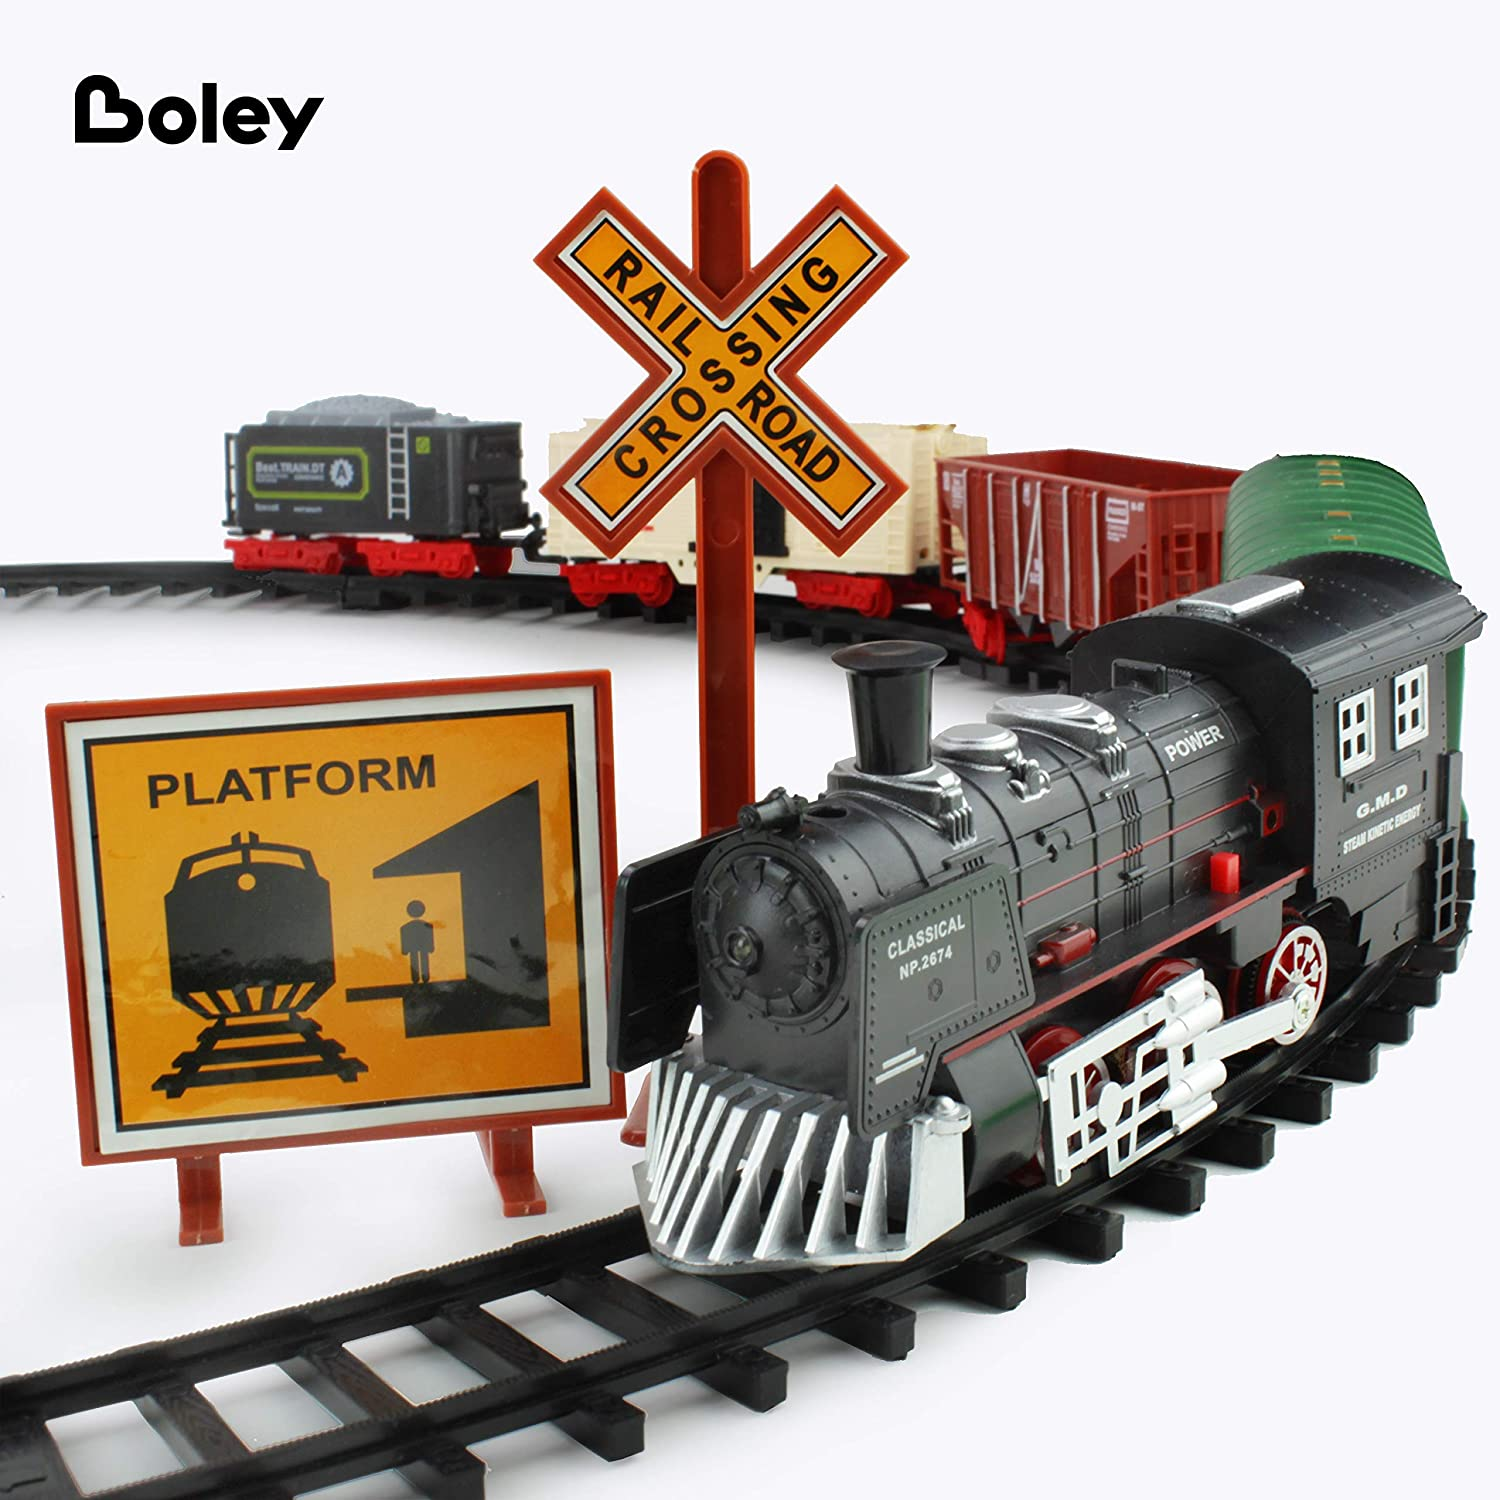 Boley Classic American Kids Train Set 40 Pc Electric Train Toy and Track Set for Ages 3+